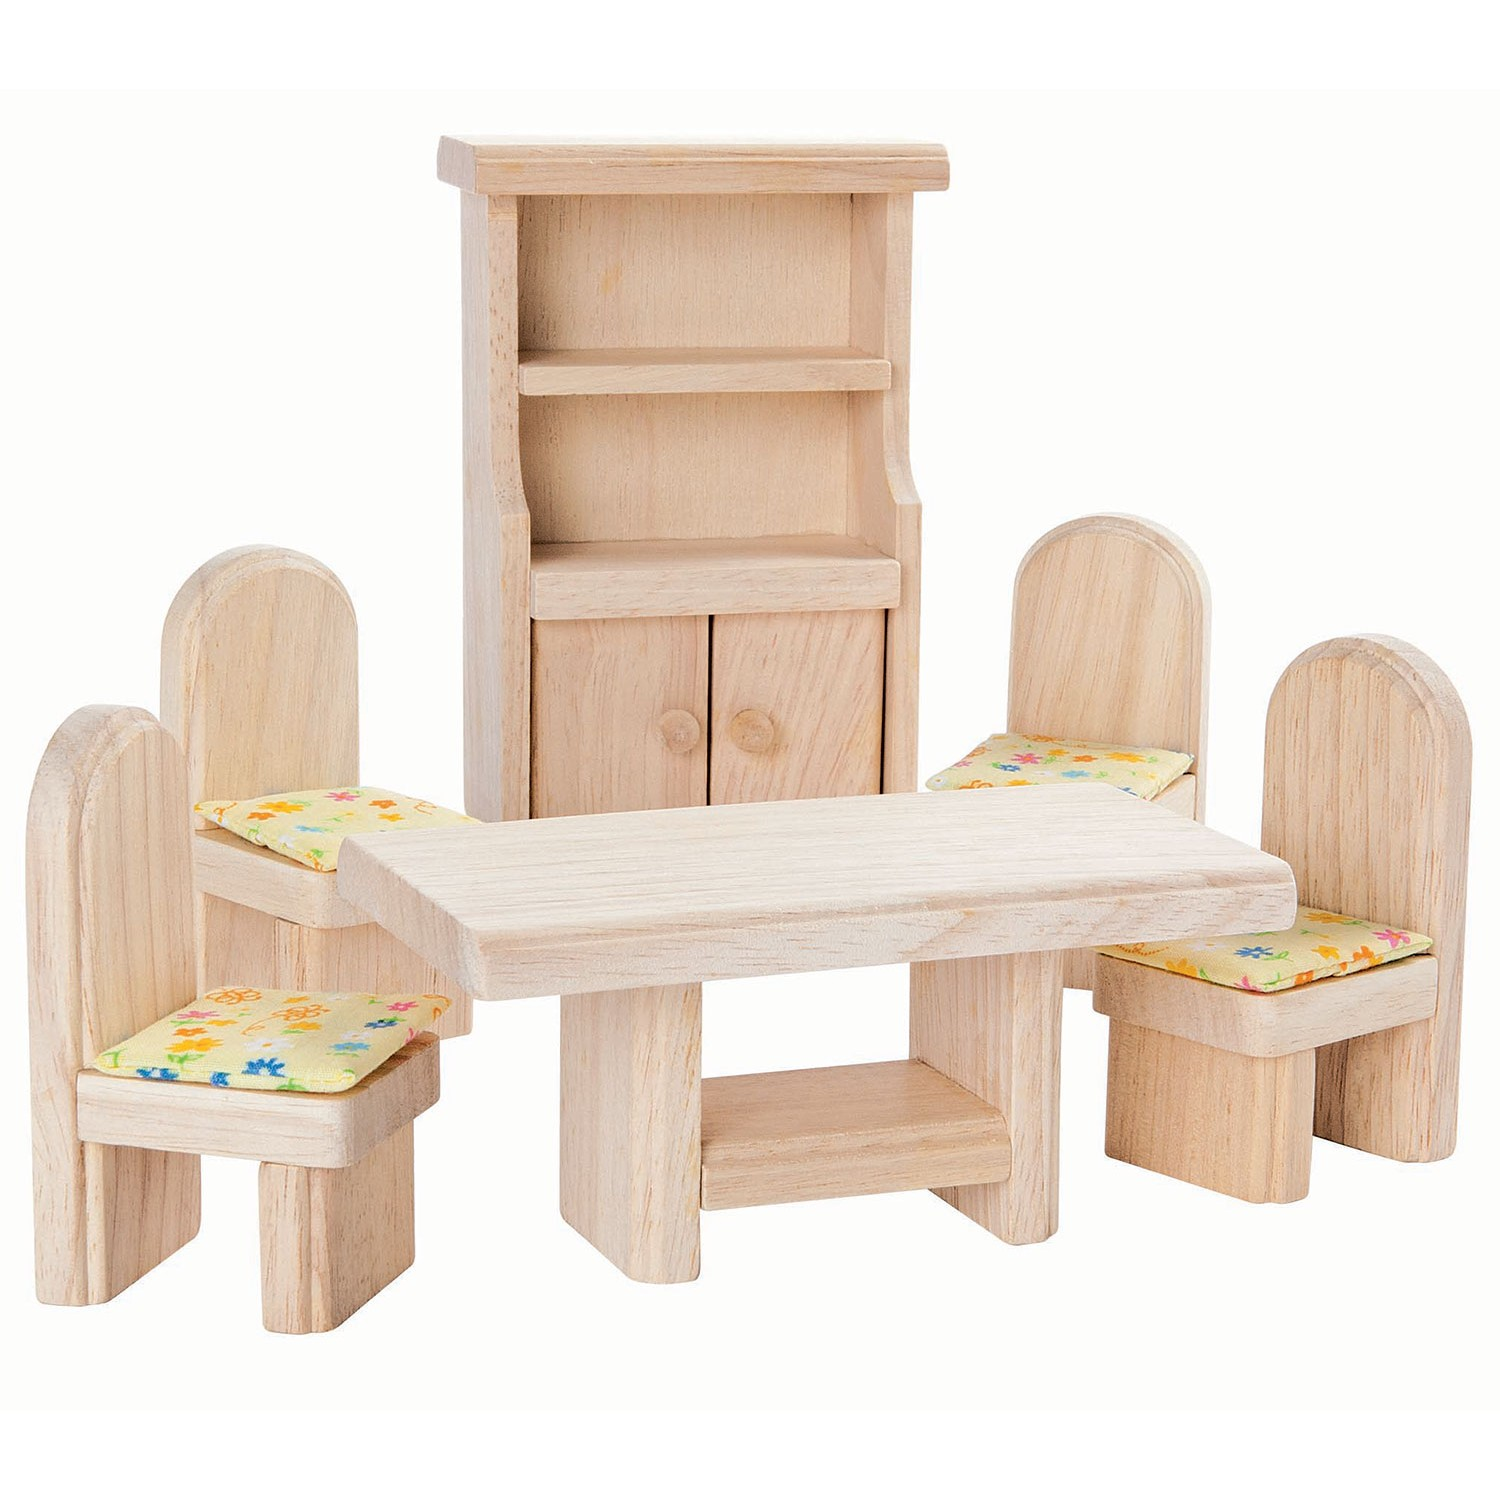 Plan toys classic dining room - Dining room plan ...